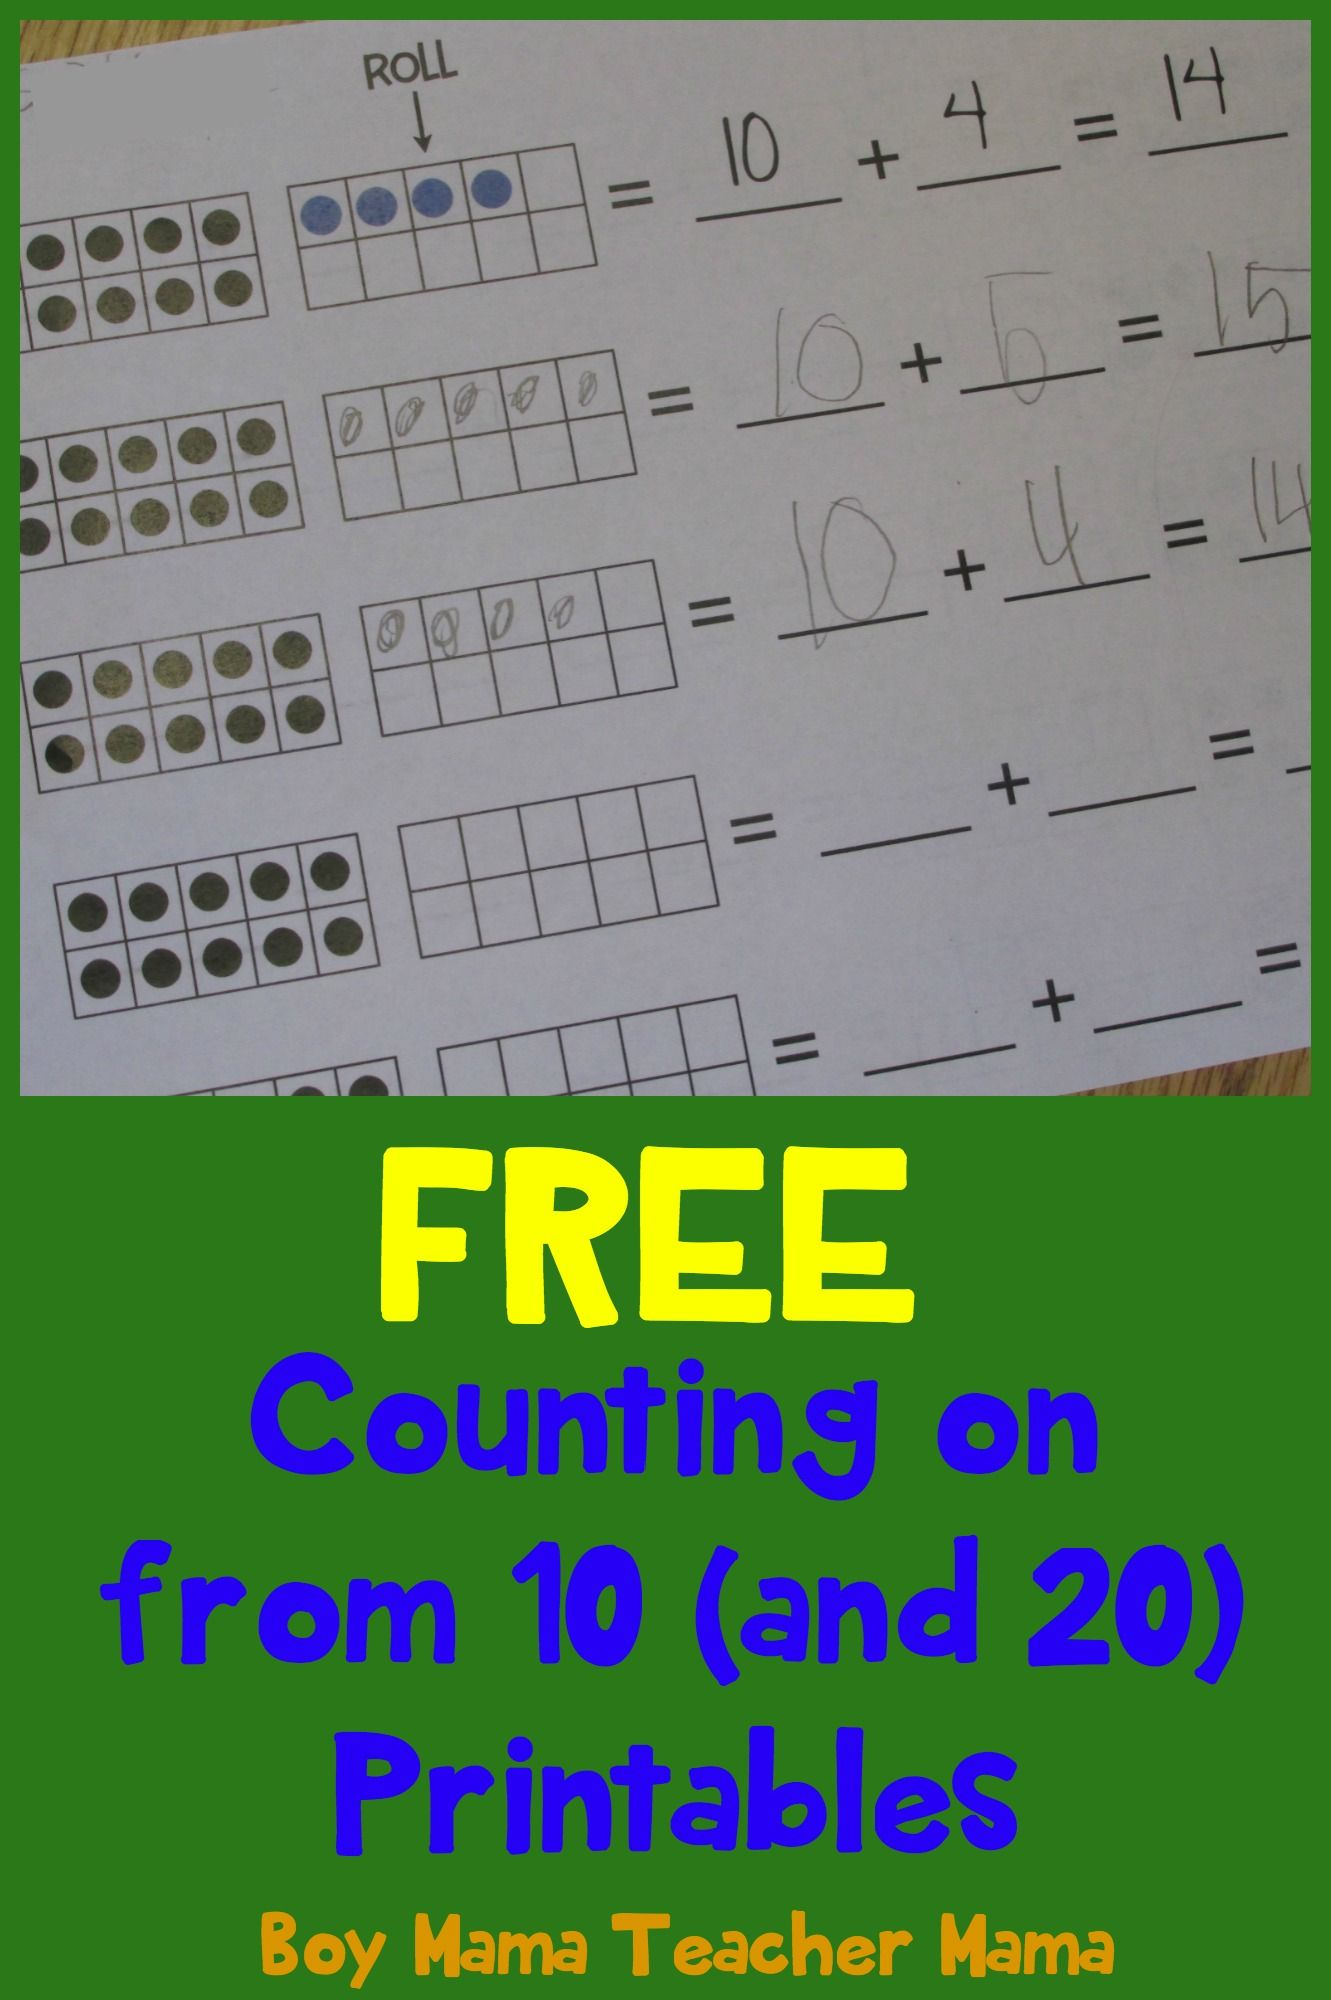 Teacher Mama Free Counting On From 10 And 20 Printables After School Linky